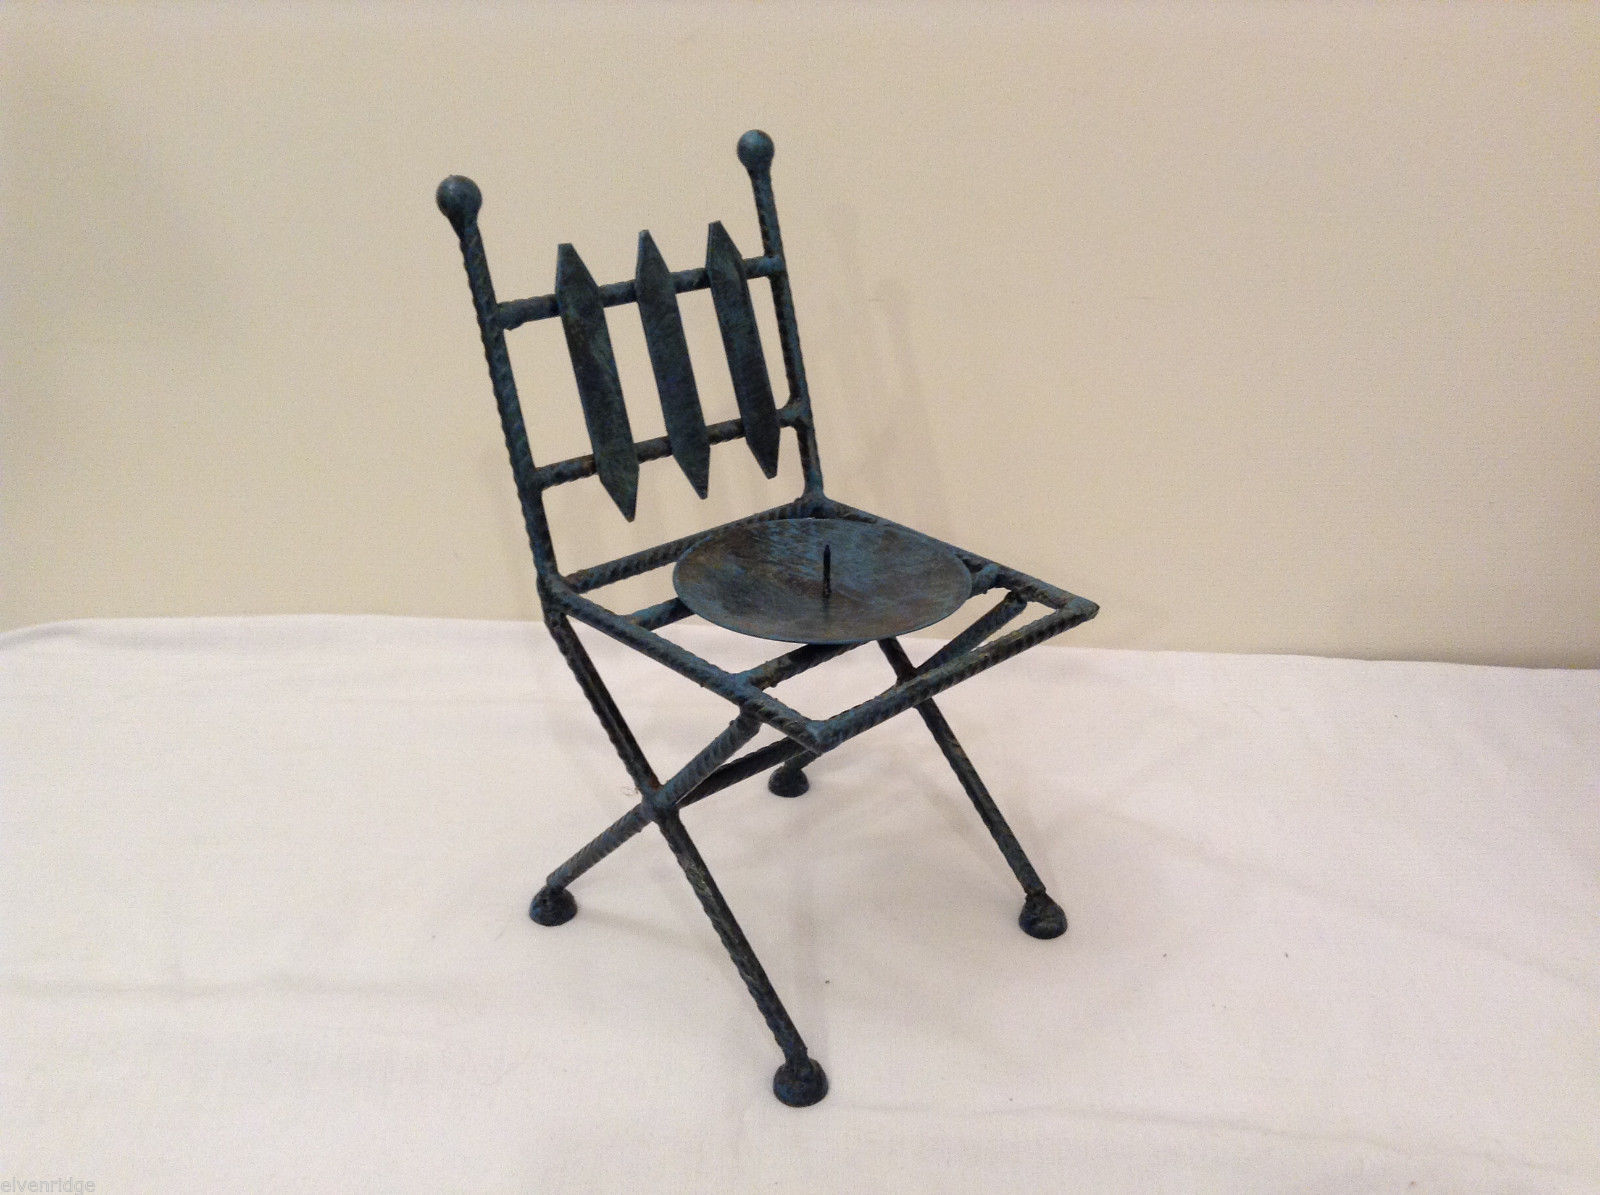 Candle Holder - Metal Chair Shape Blue Paint